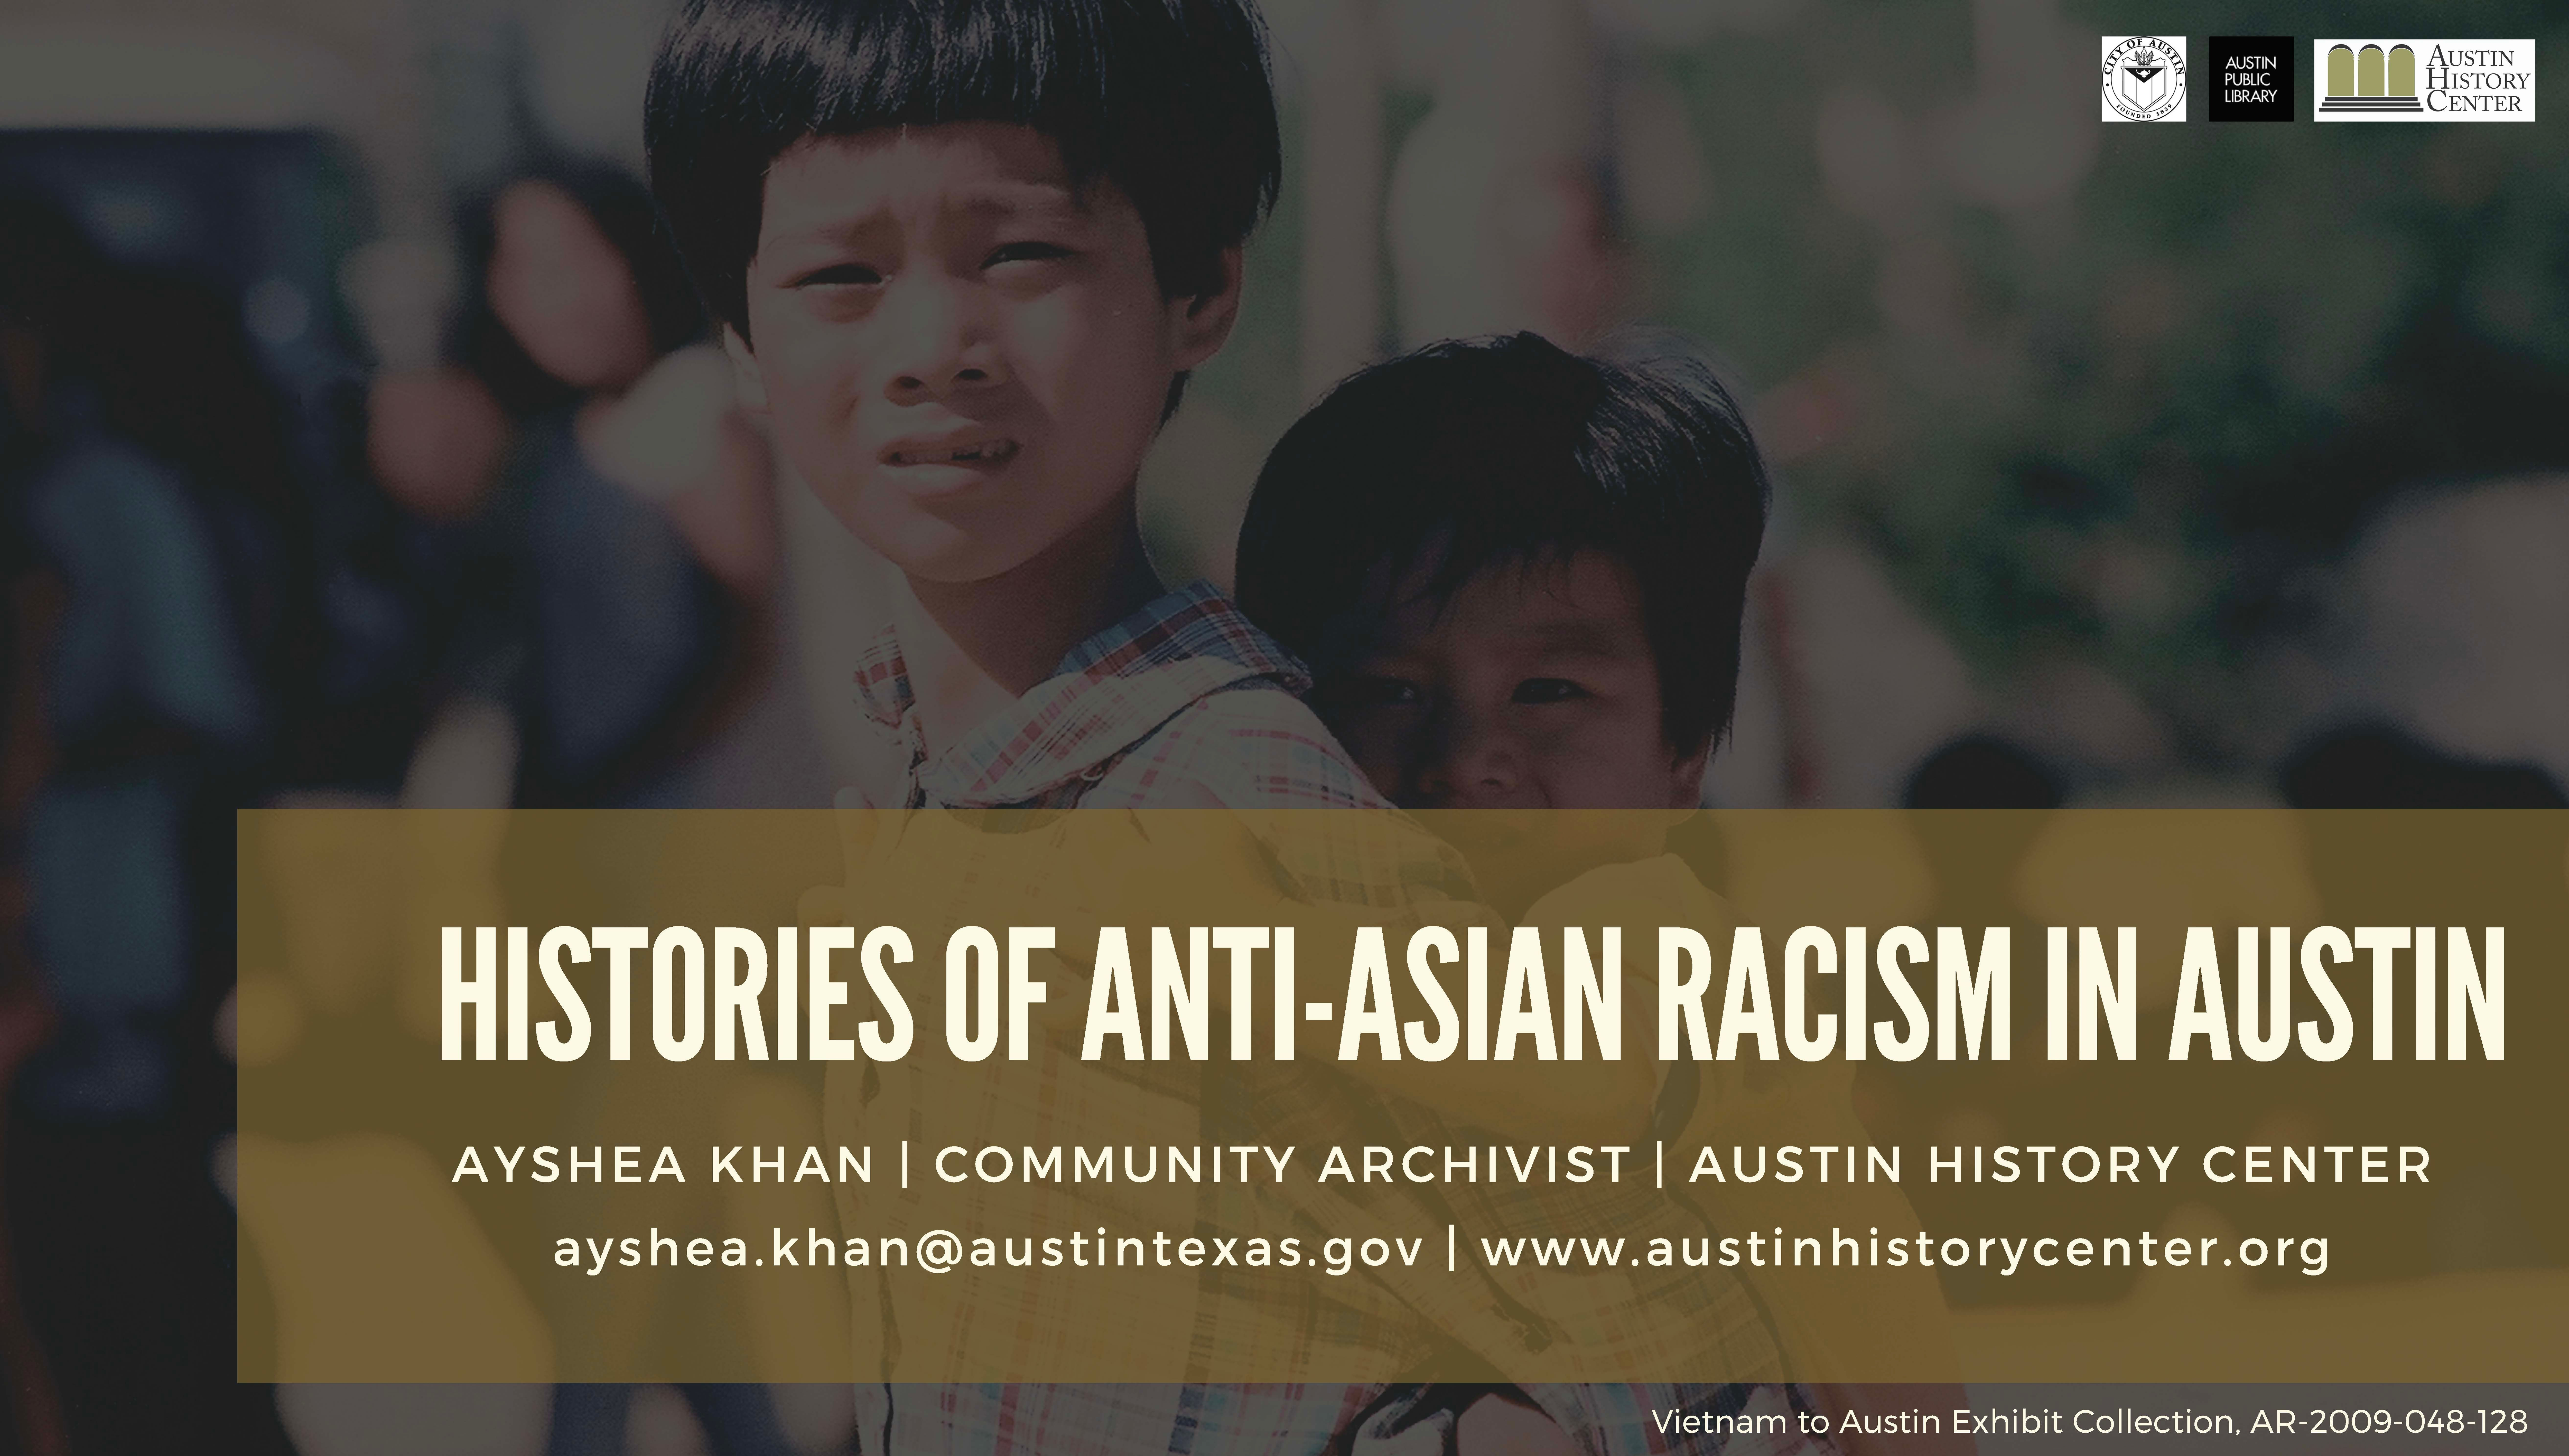 Histories of Anti-Asian Racism in Austin